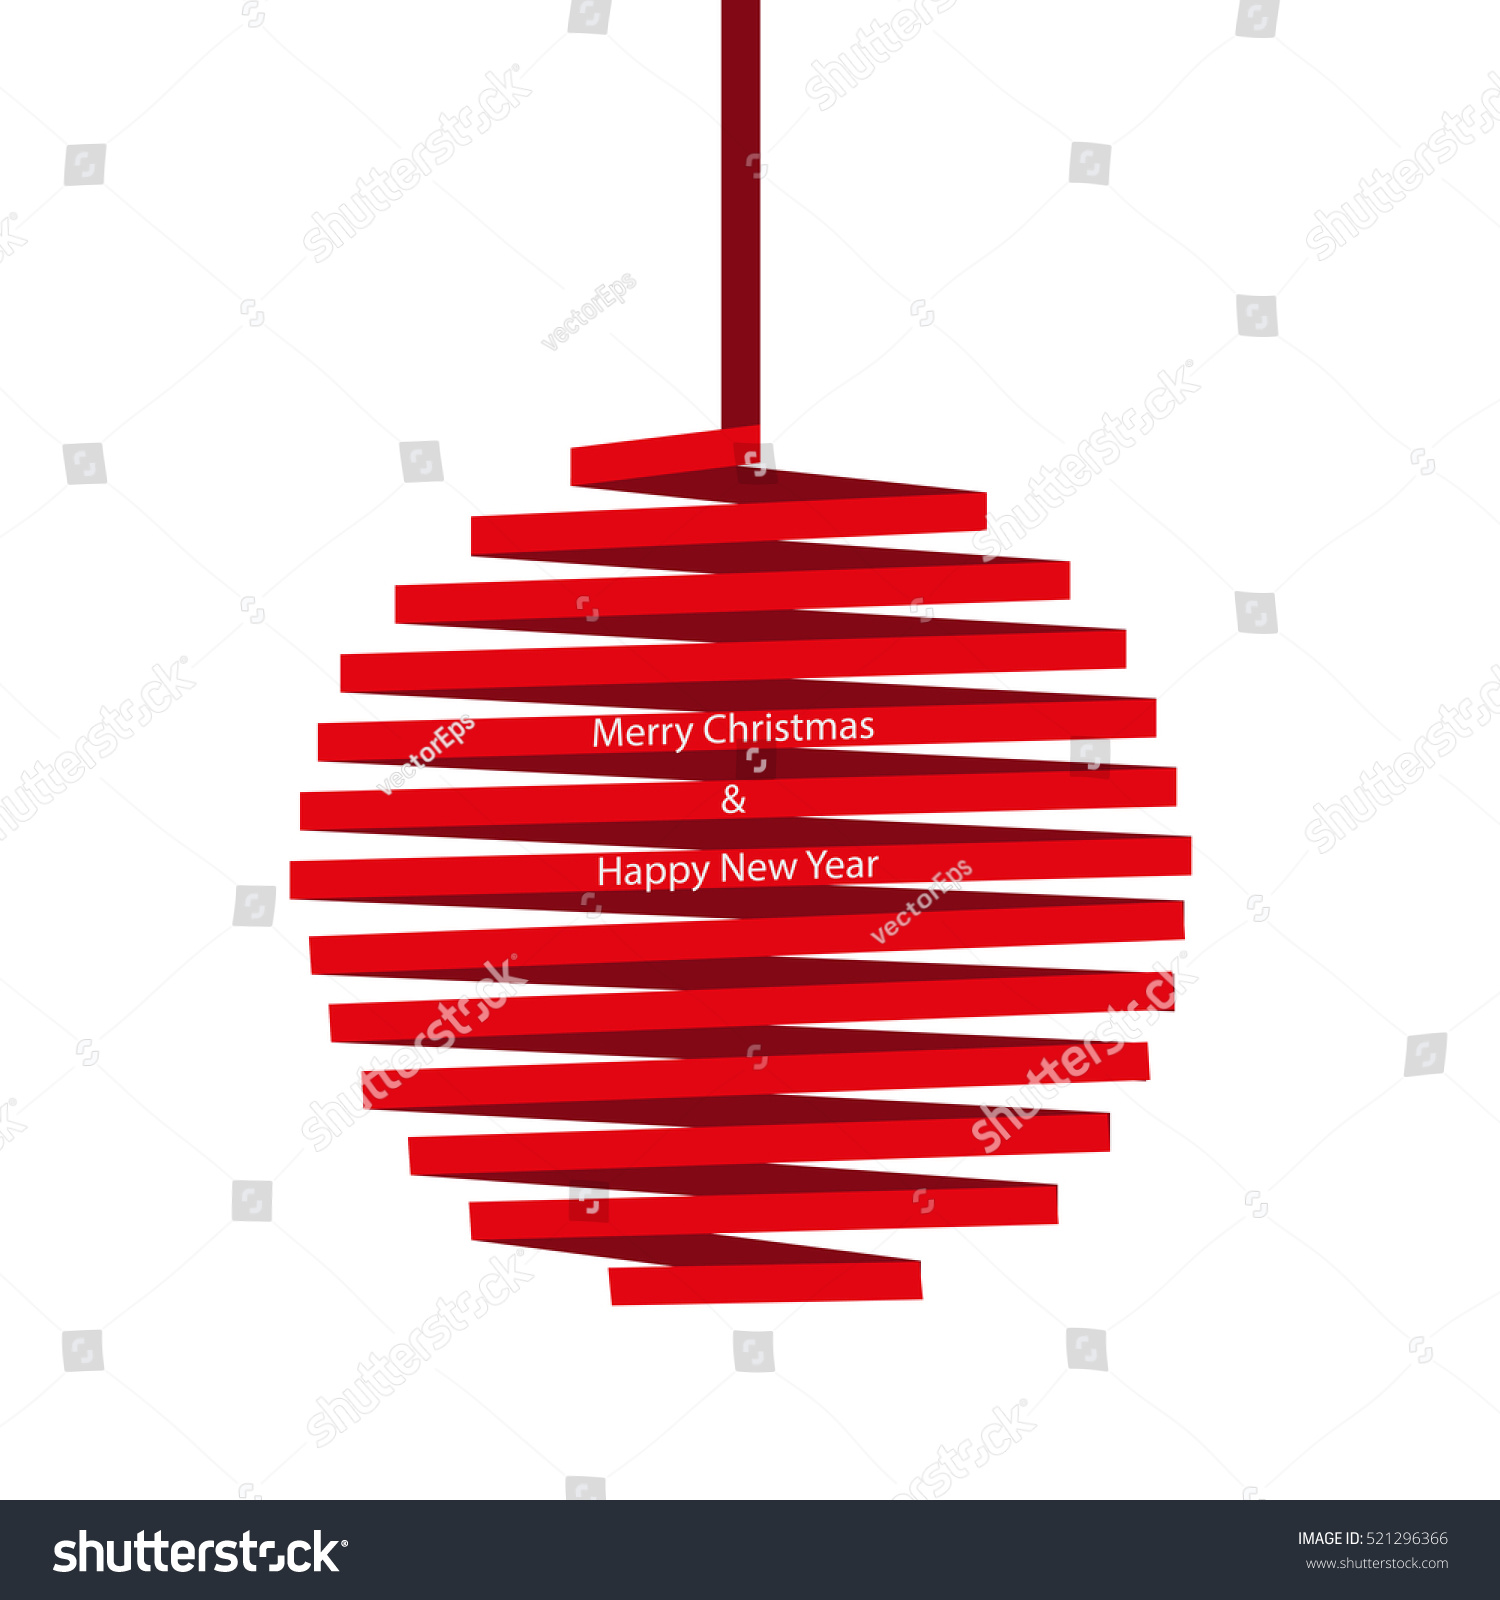 stock vector christmas ball made of red ribbon isolated on white background red ribbon with text banner for 521296366 banner swag wiring diagrams wiring diagrams Basic Electrical Wiring Diagrams at edmiracle.co